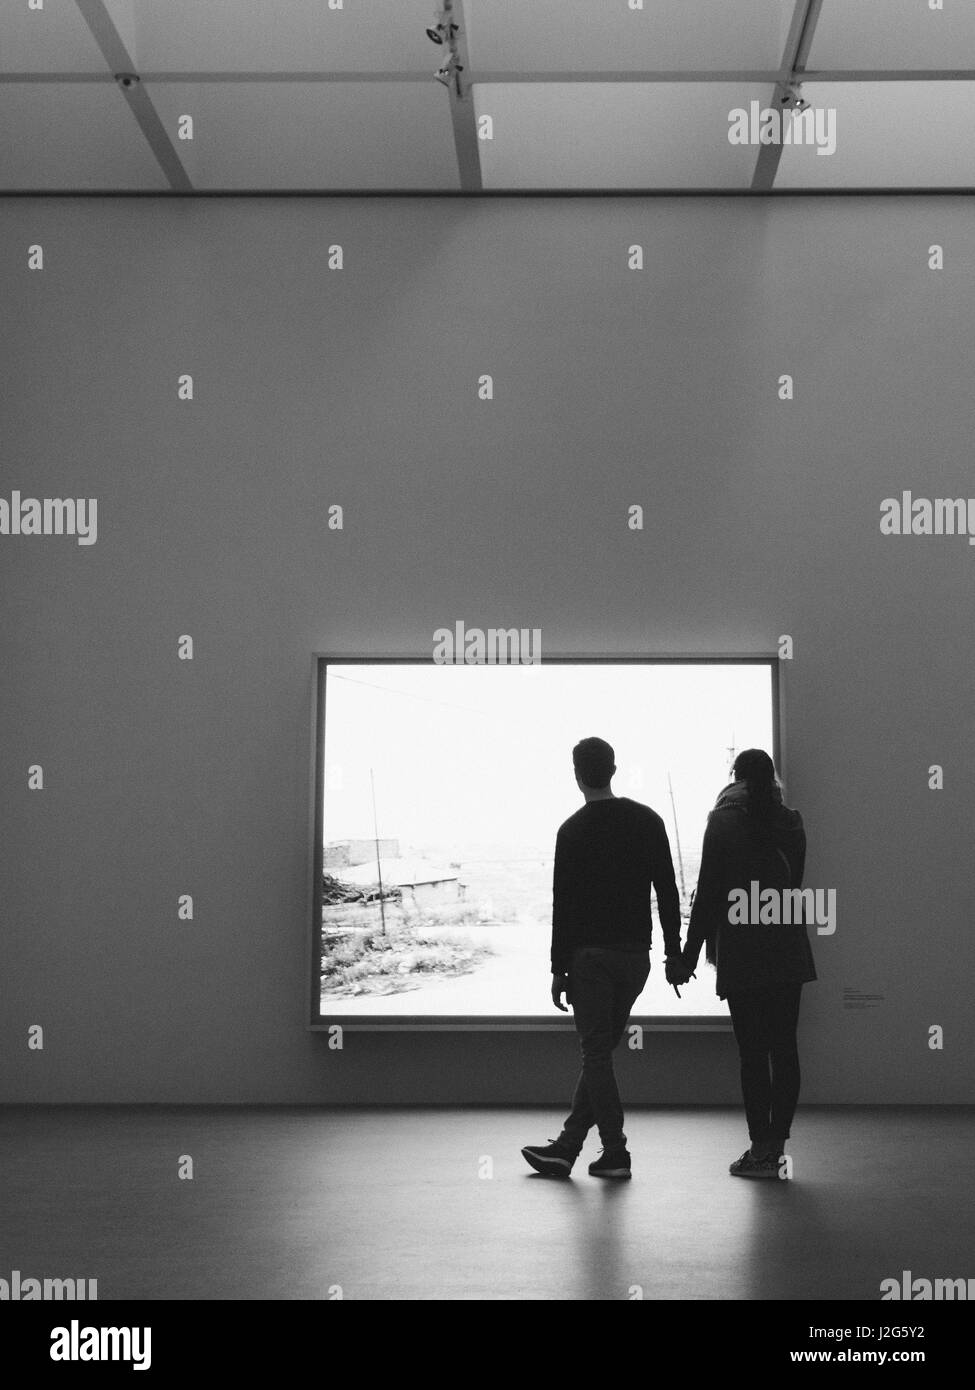 A silhouette of a male and female couple looking at an exhibit in an art museum - Stock Image